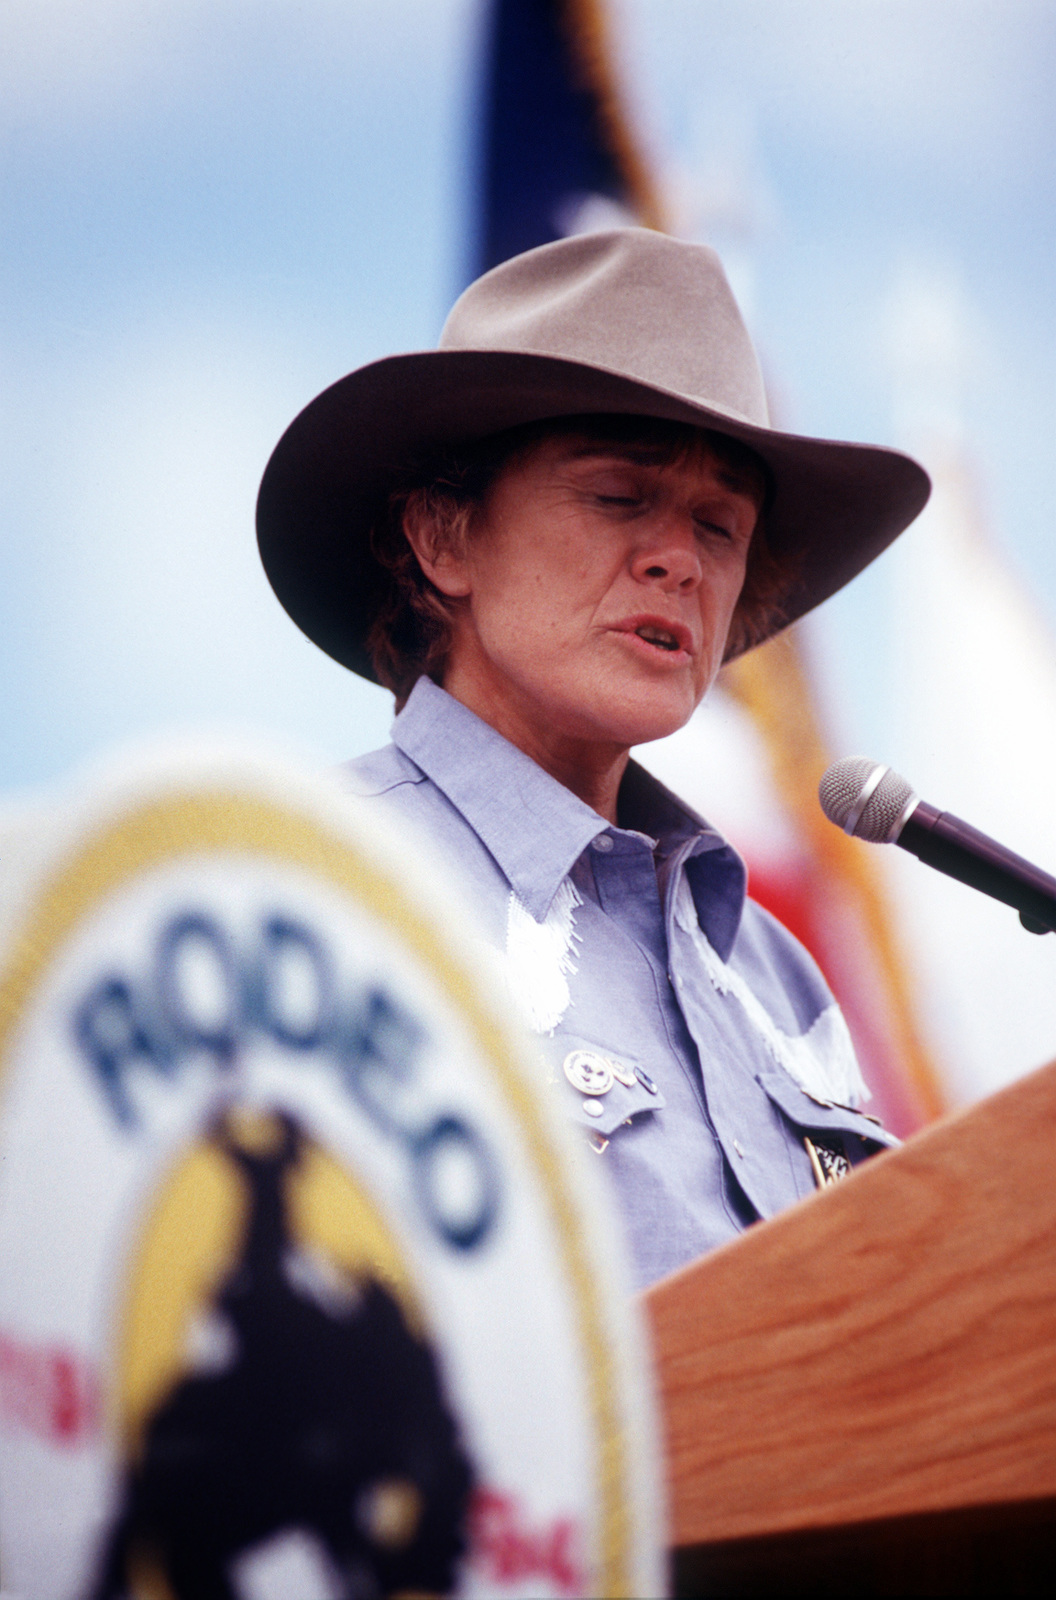 Dr. Sheila Widnall, Secretary of the Air Force, speaks at RODEO 94